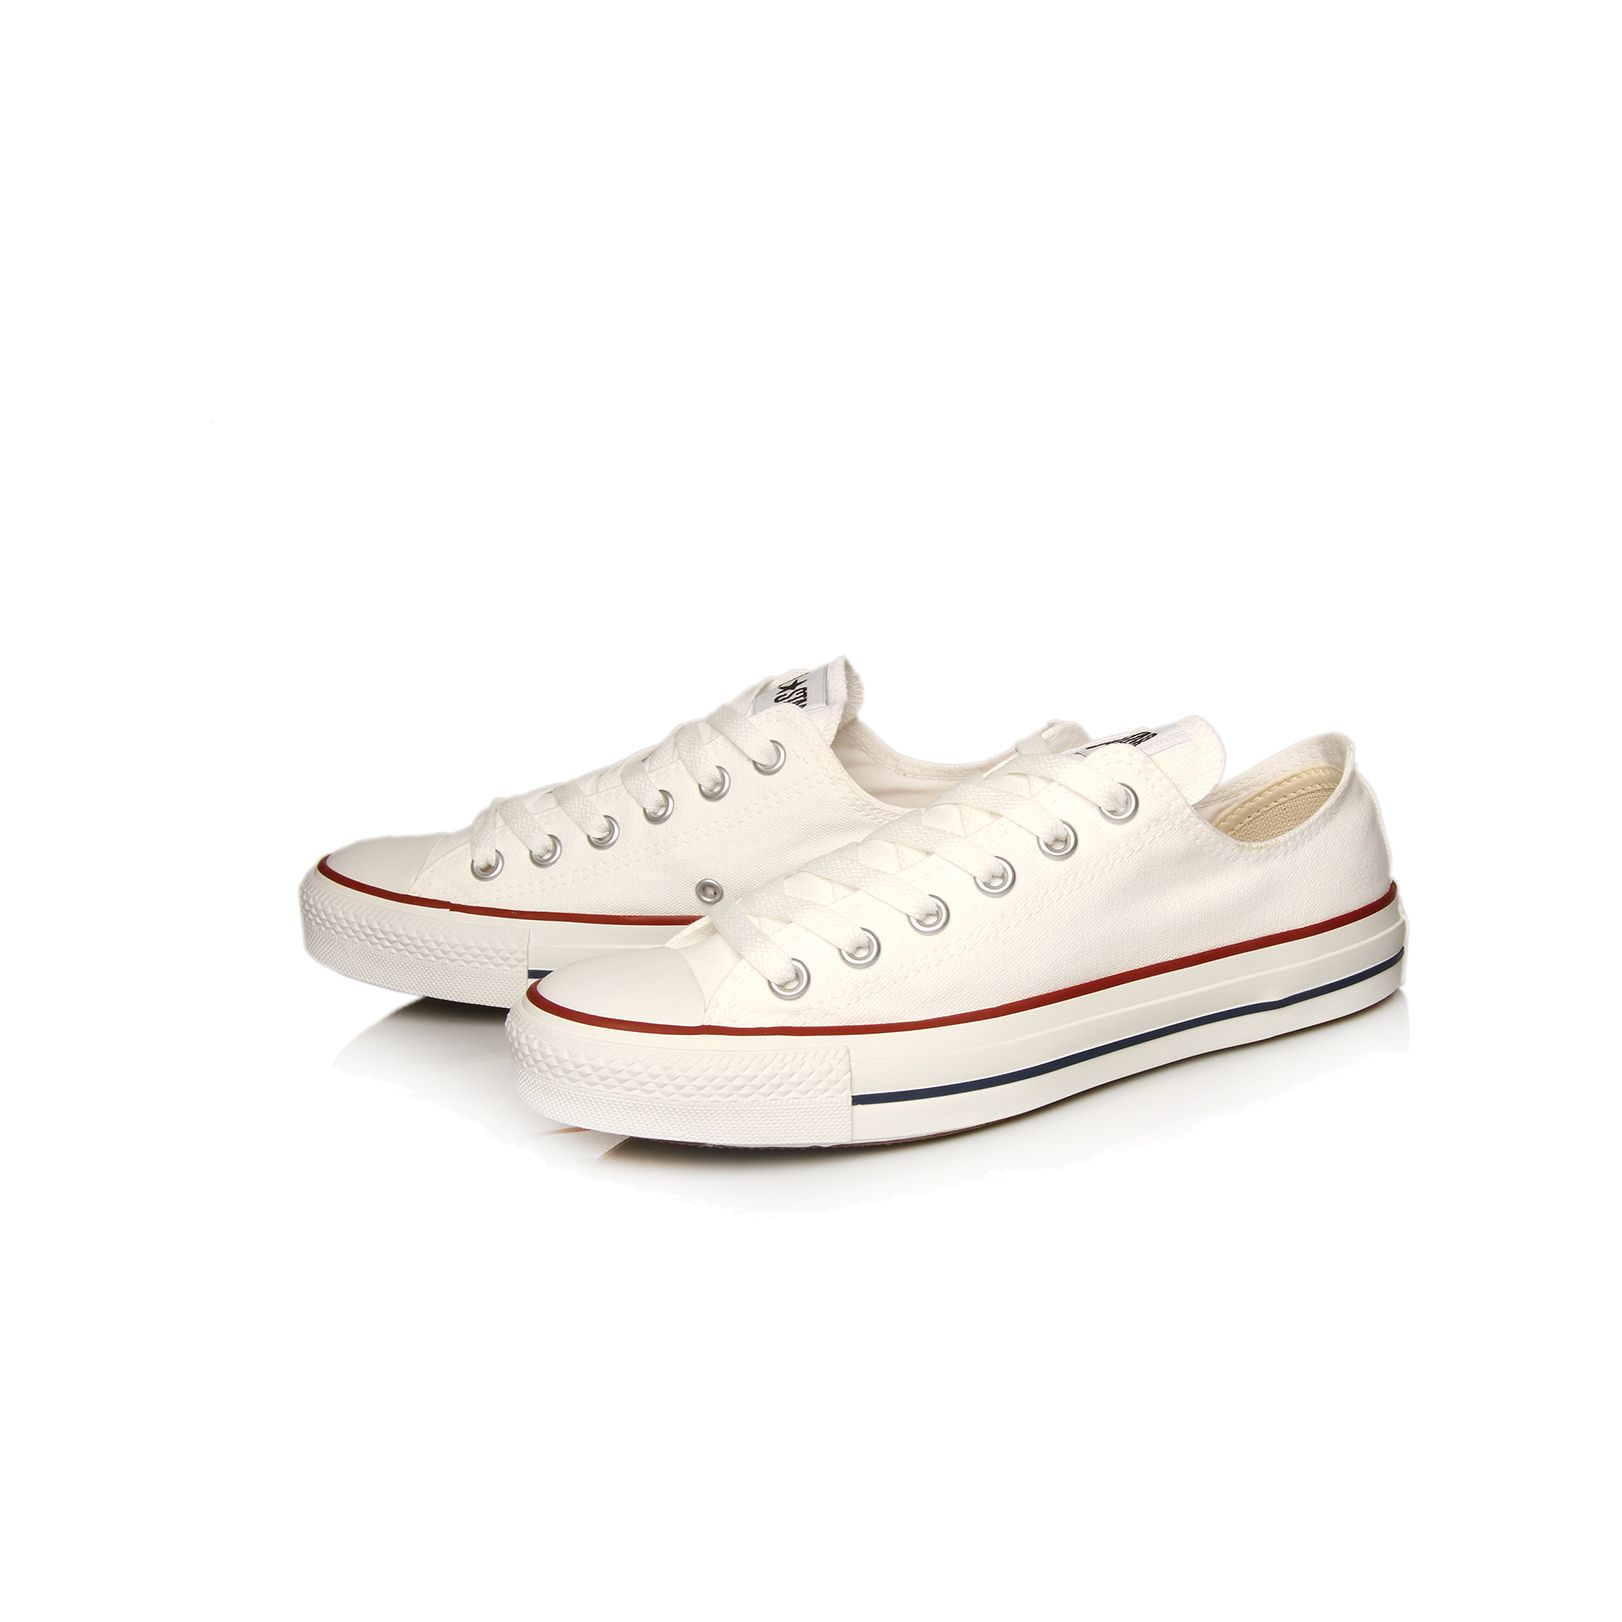 converse chuck taylor low top trainers in white lyst